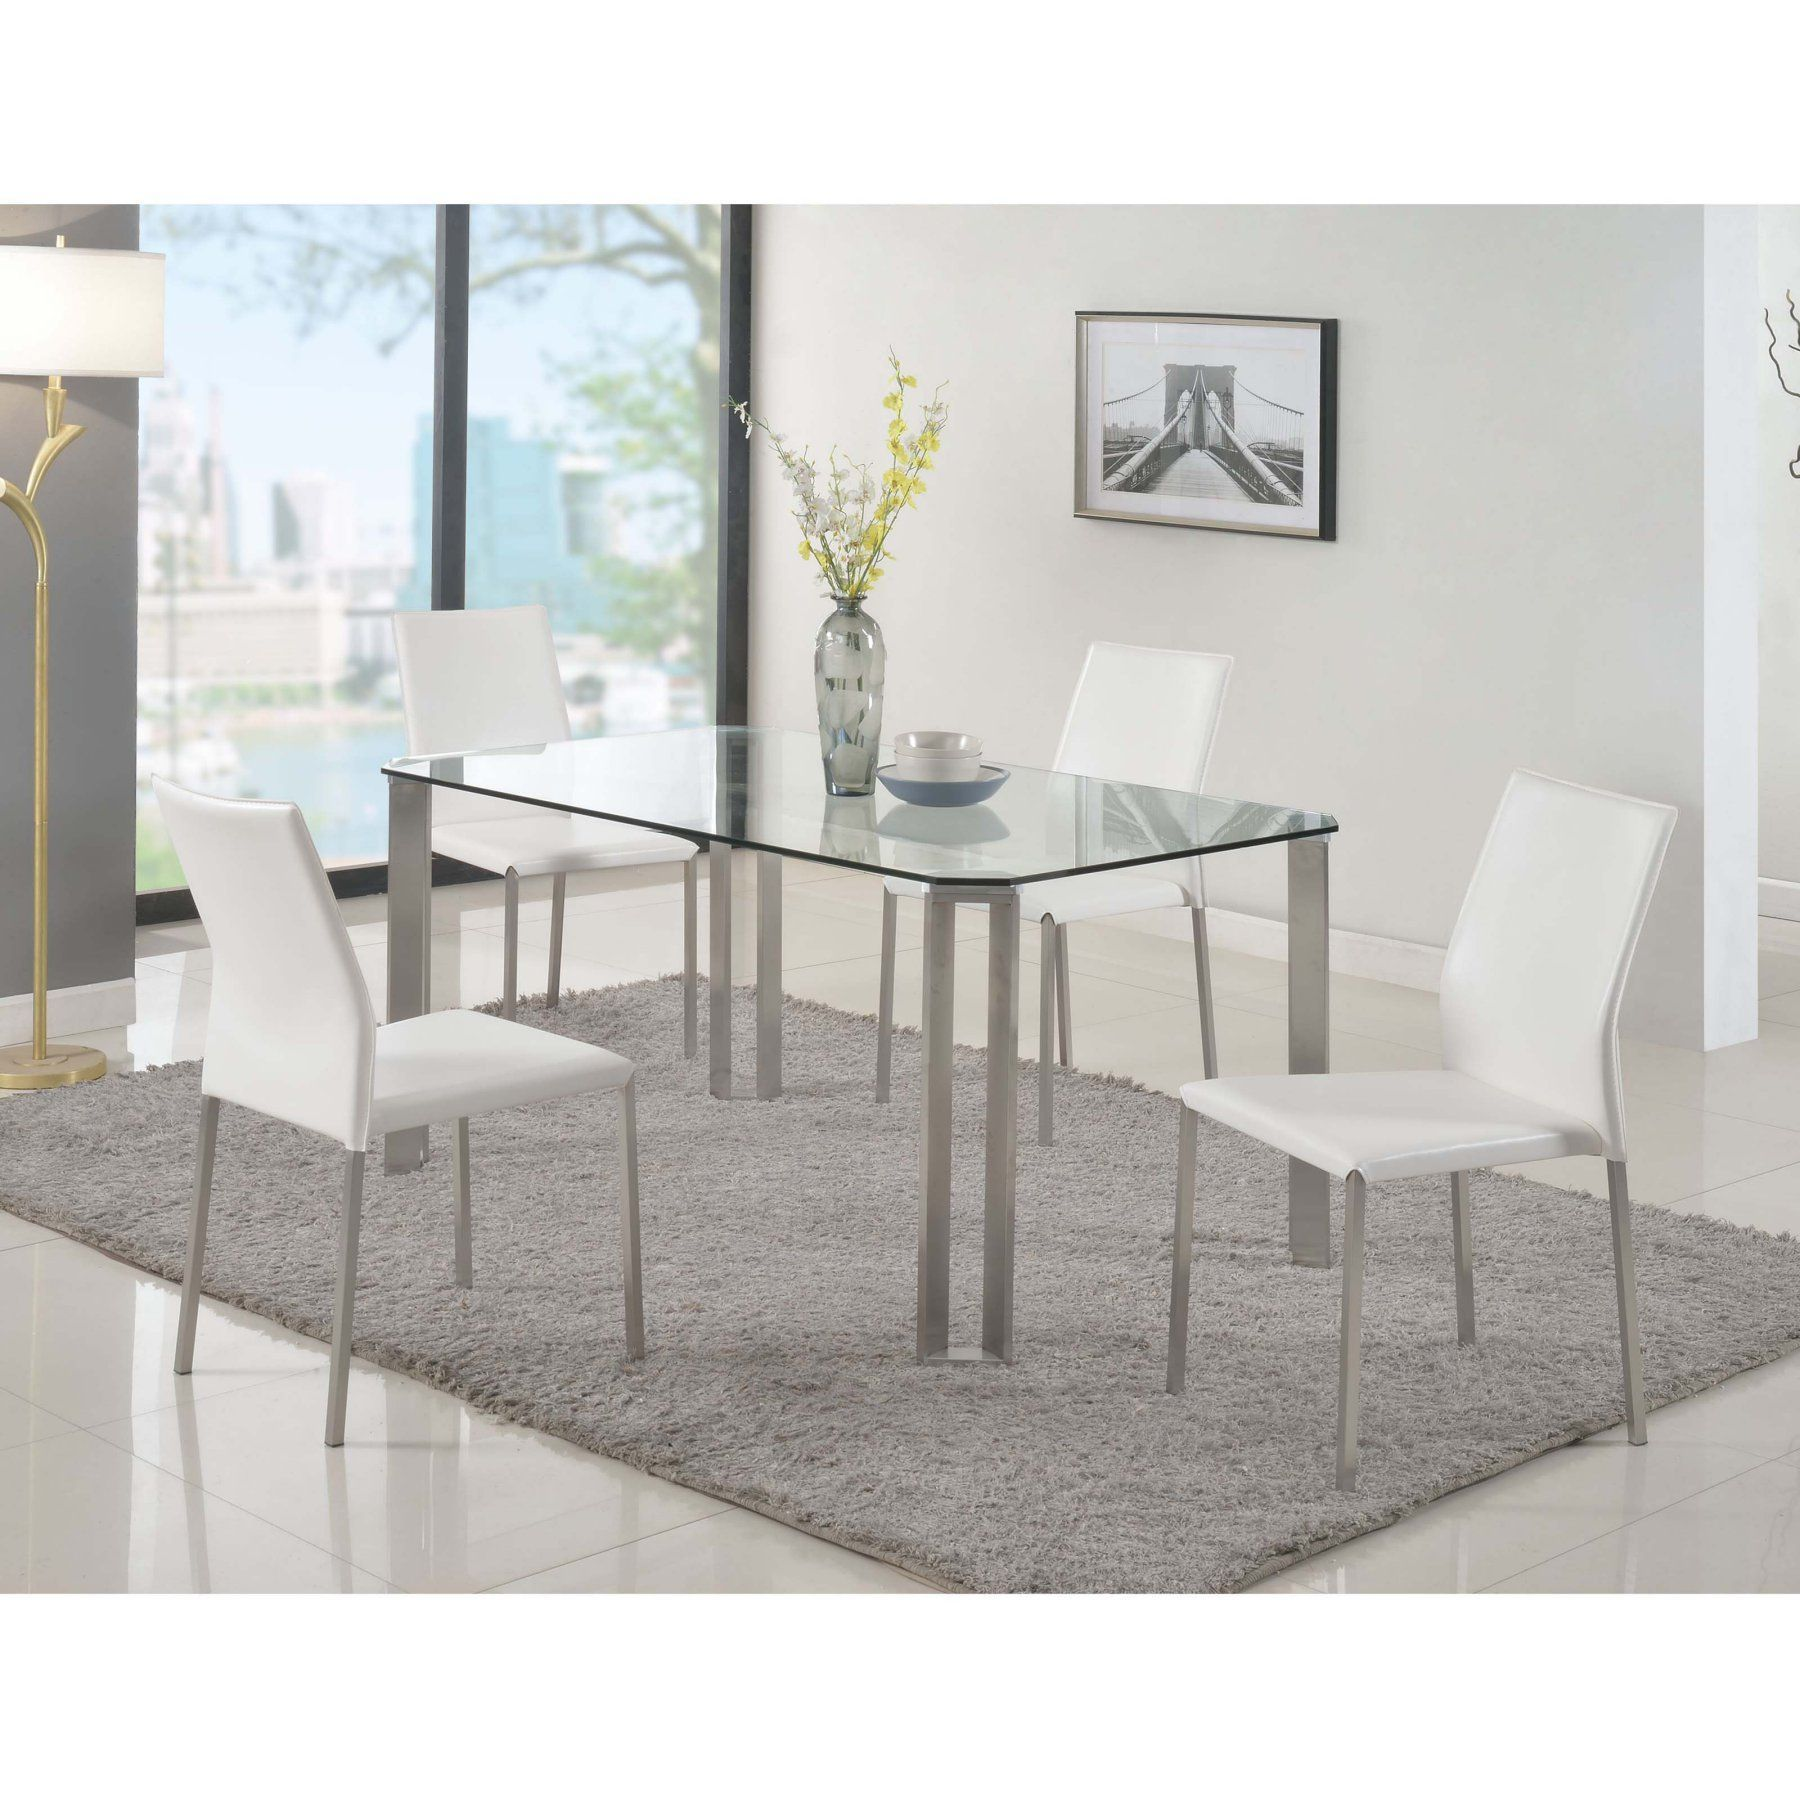 Chintaly Rhonda 5 Piece Dining Table Set Cty2100